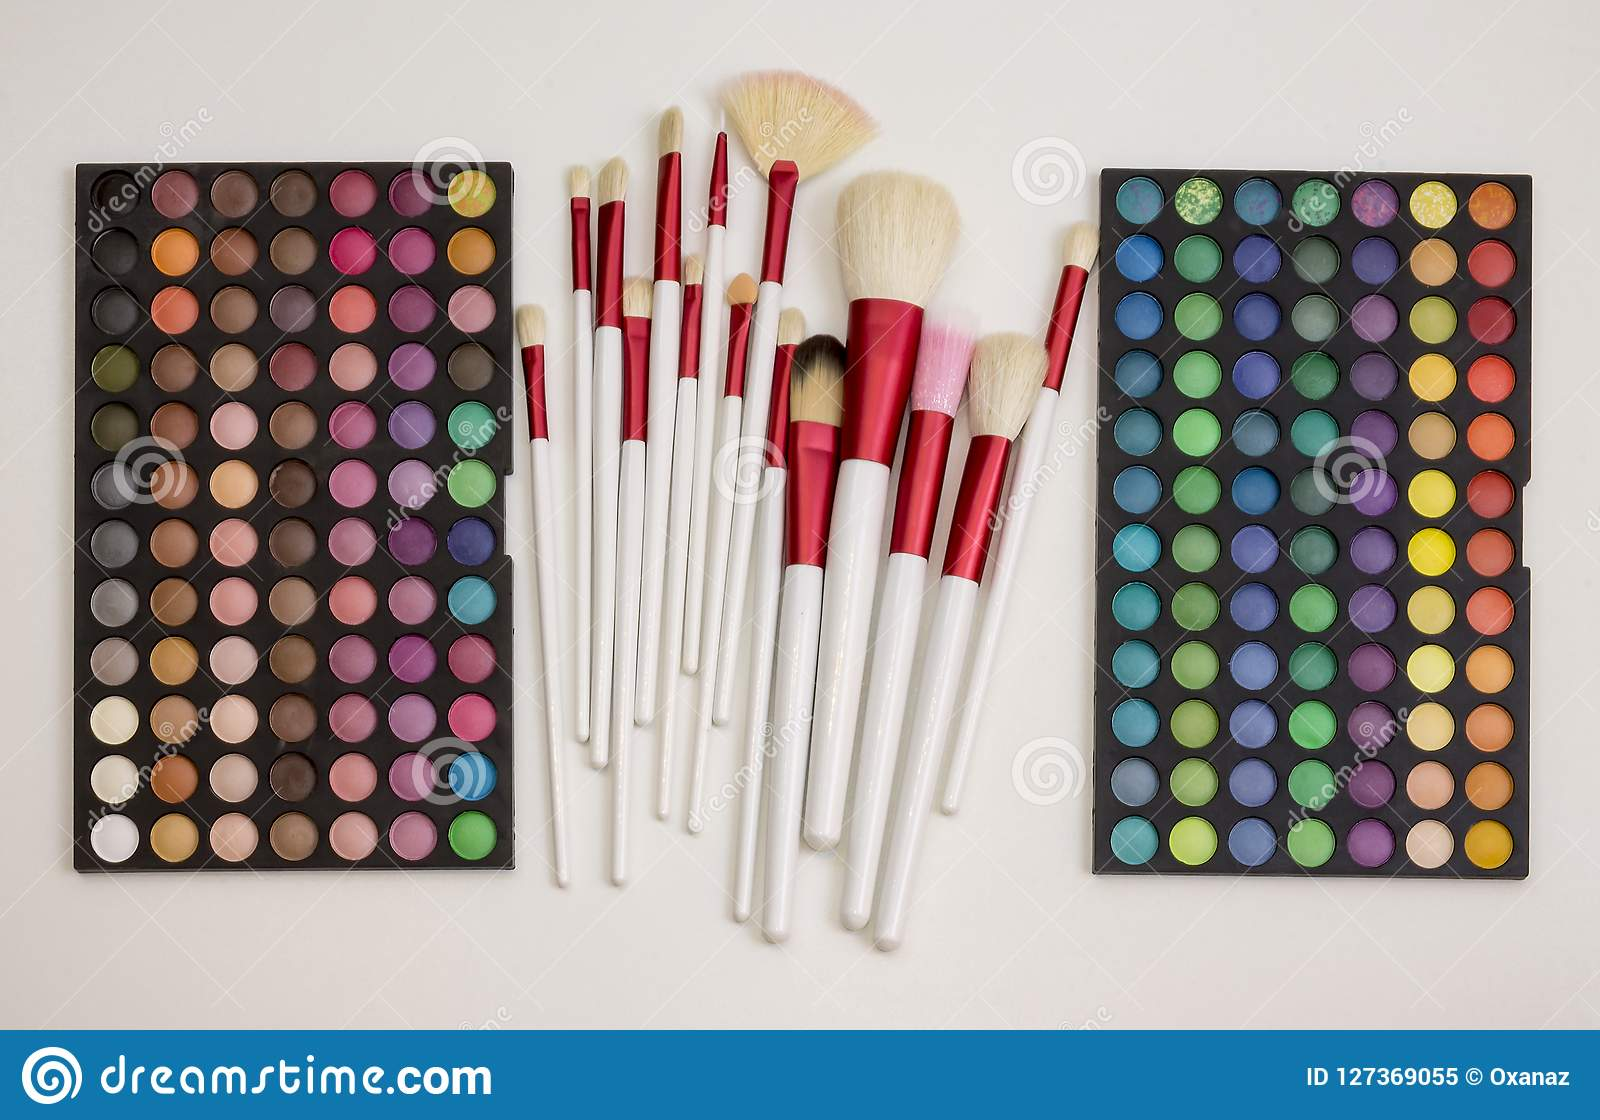 Colorful makeup set of eye shadows and brushes